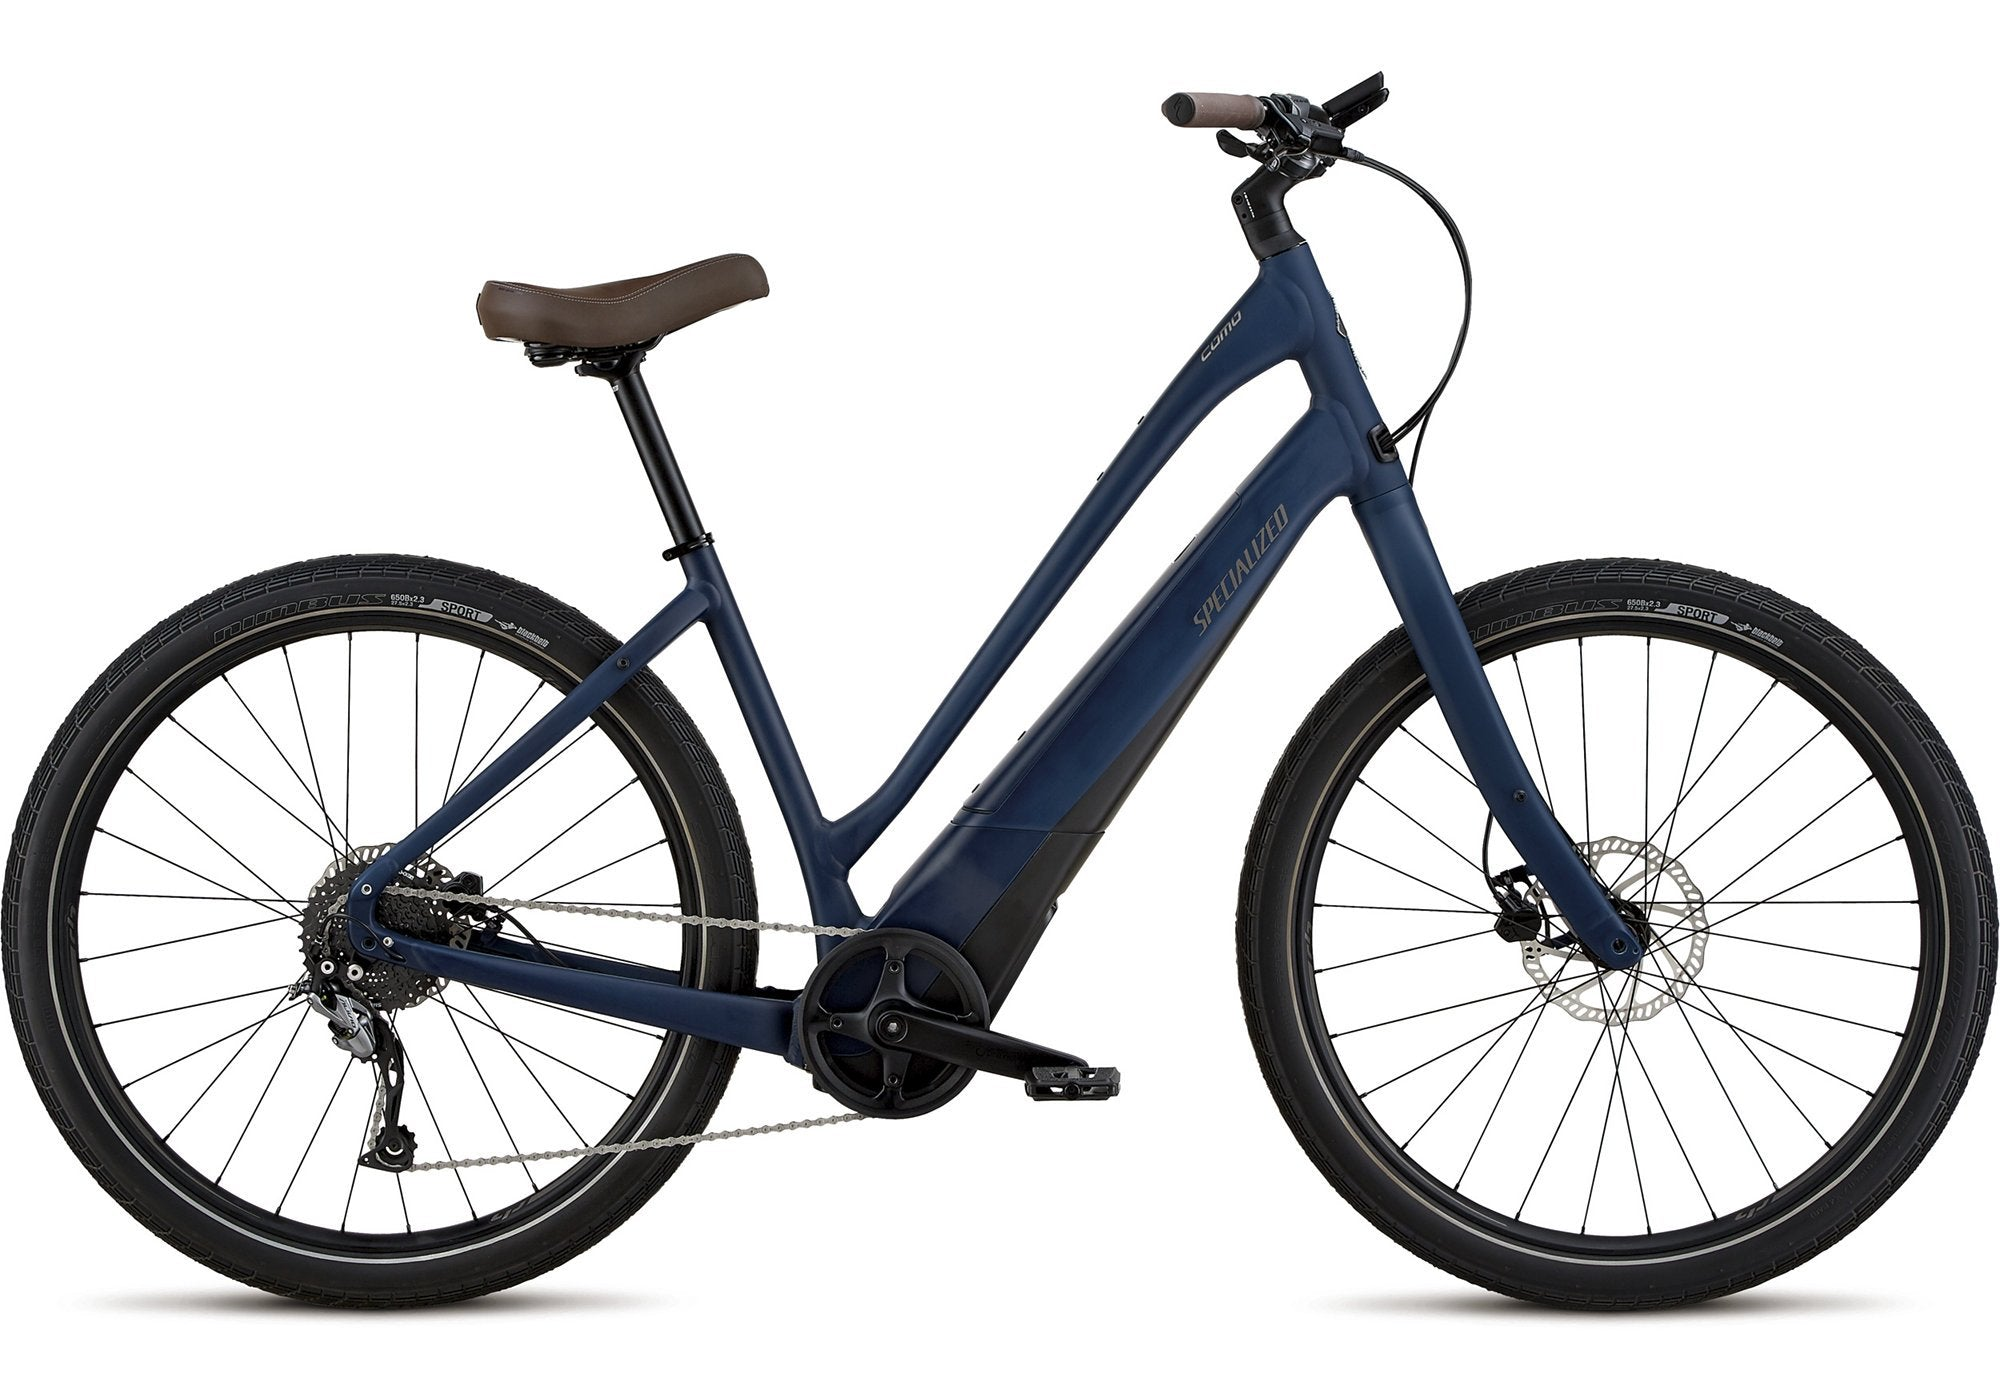 Specialized Como 2.0 Low E-Bike